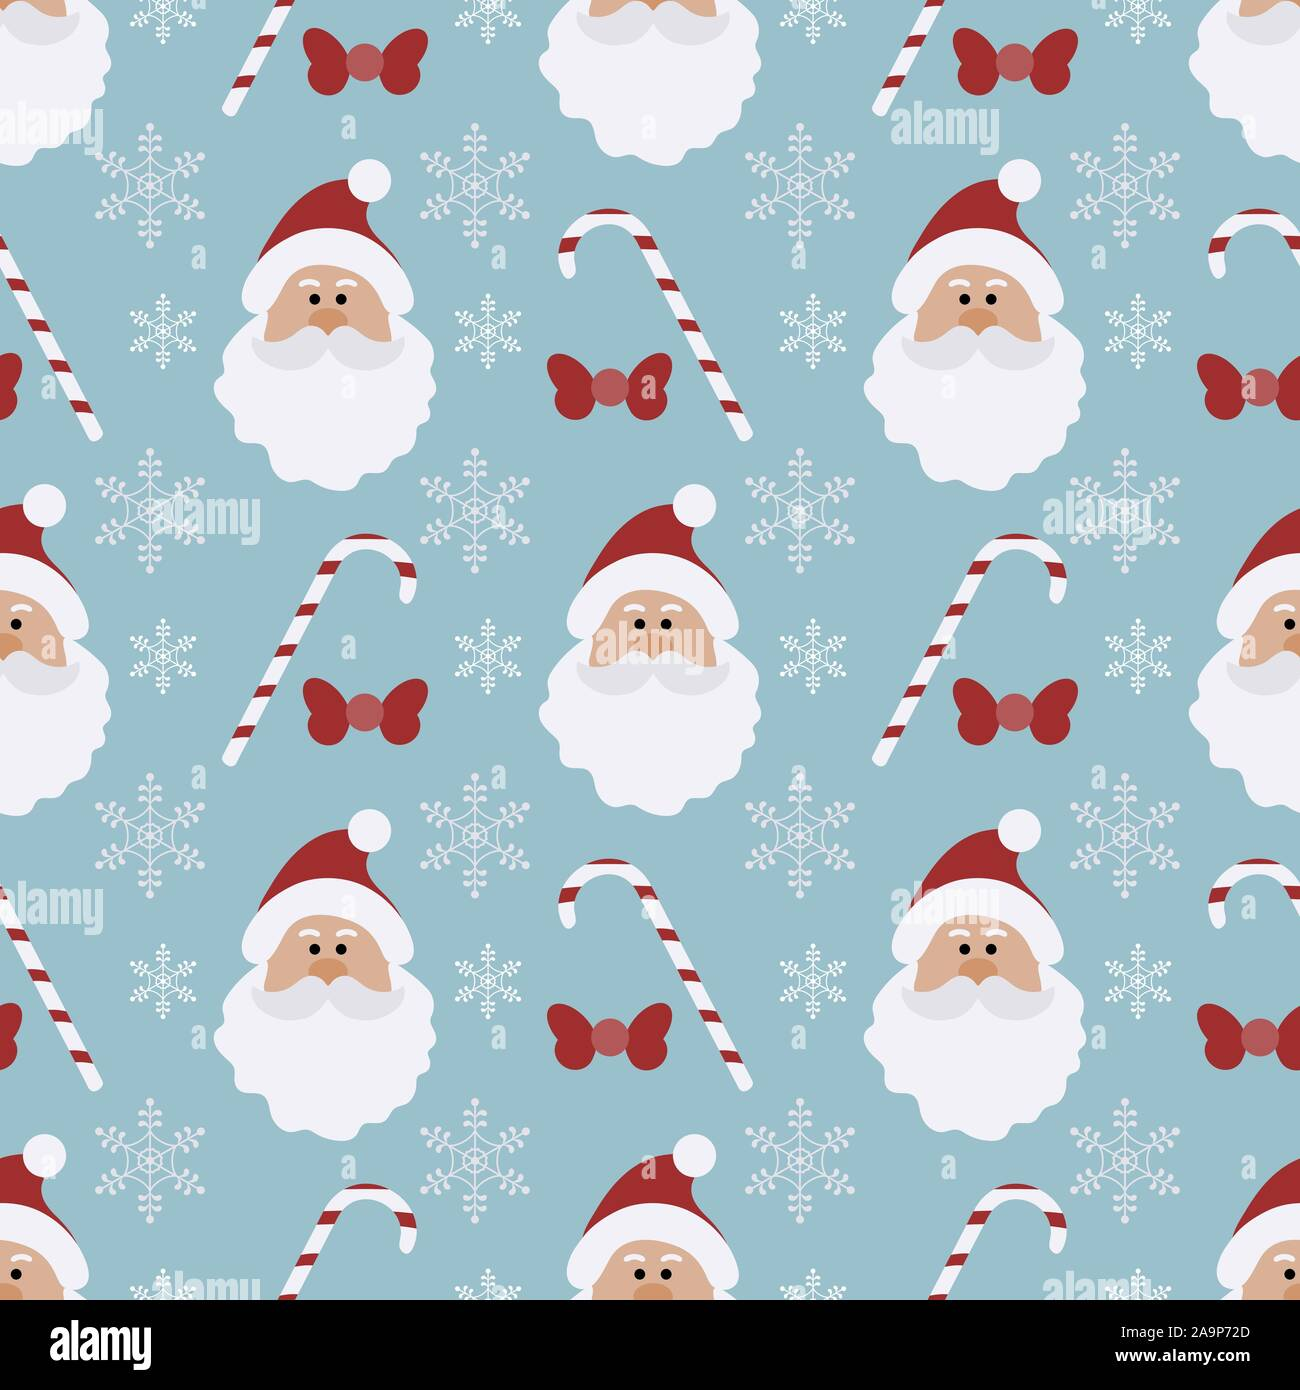 Candy Christmas 2020 Happy new year 2020, Merry Christmas. Vector seamless pattern with